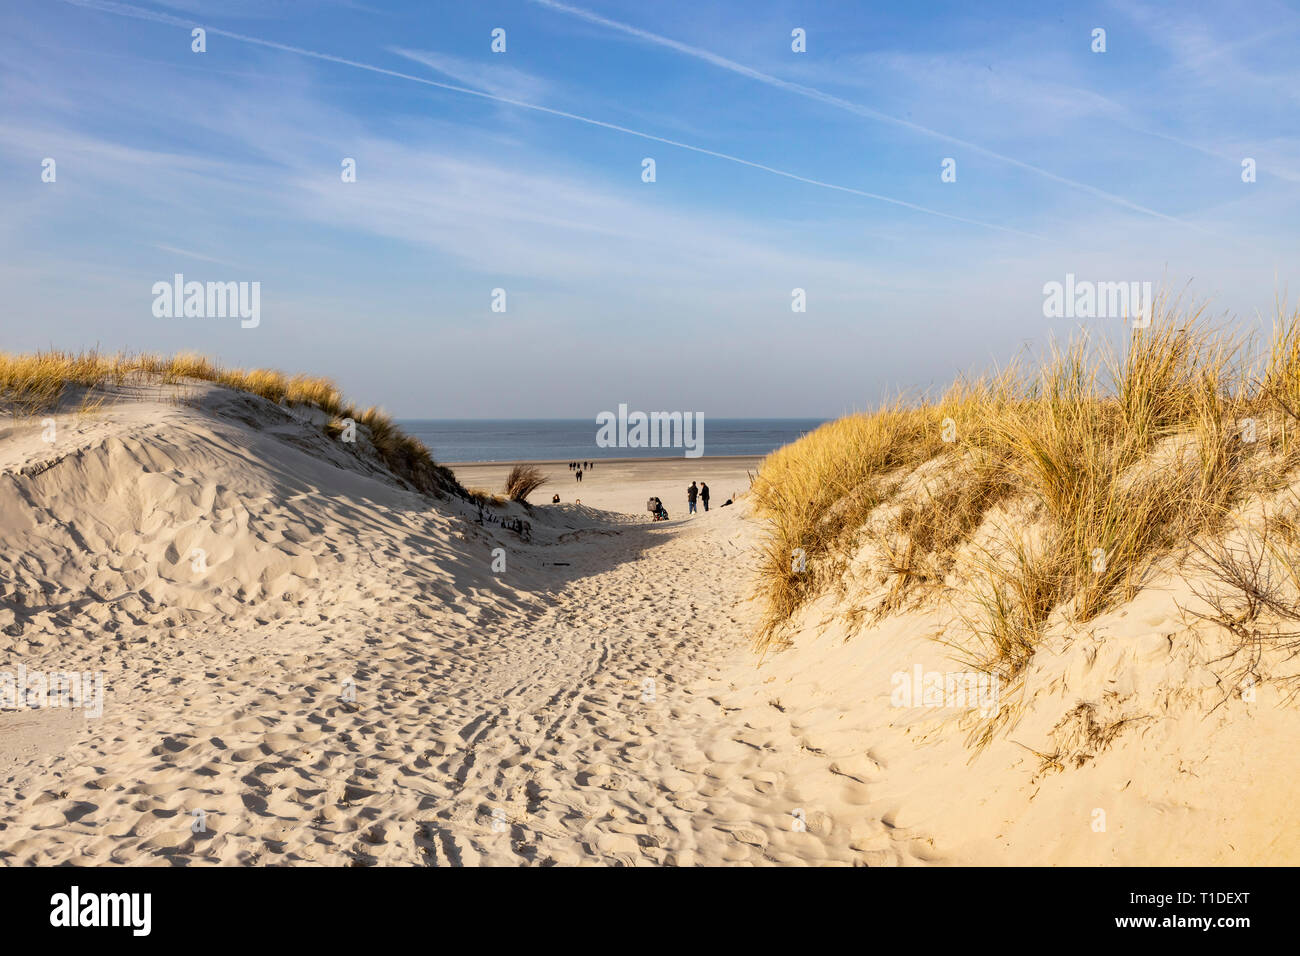 North Sea island Langeoog, Ostfriesland, Lower Saxony, beach crossing, beach path, Stock Photo